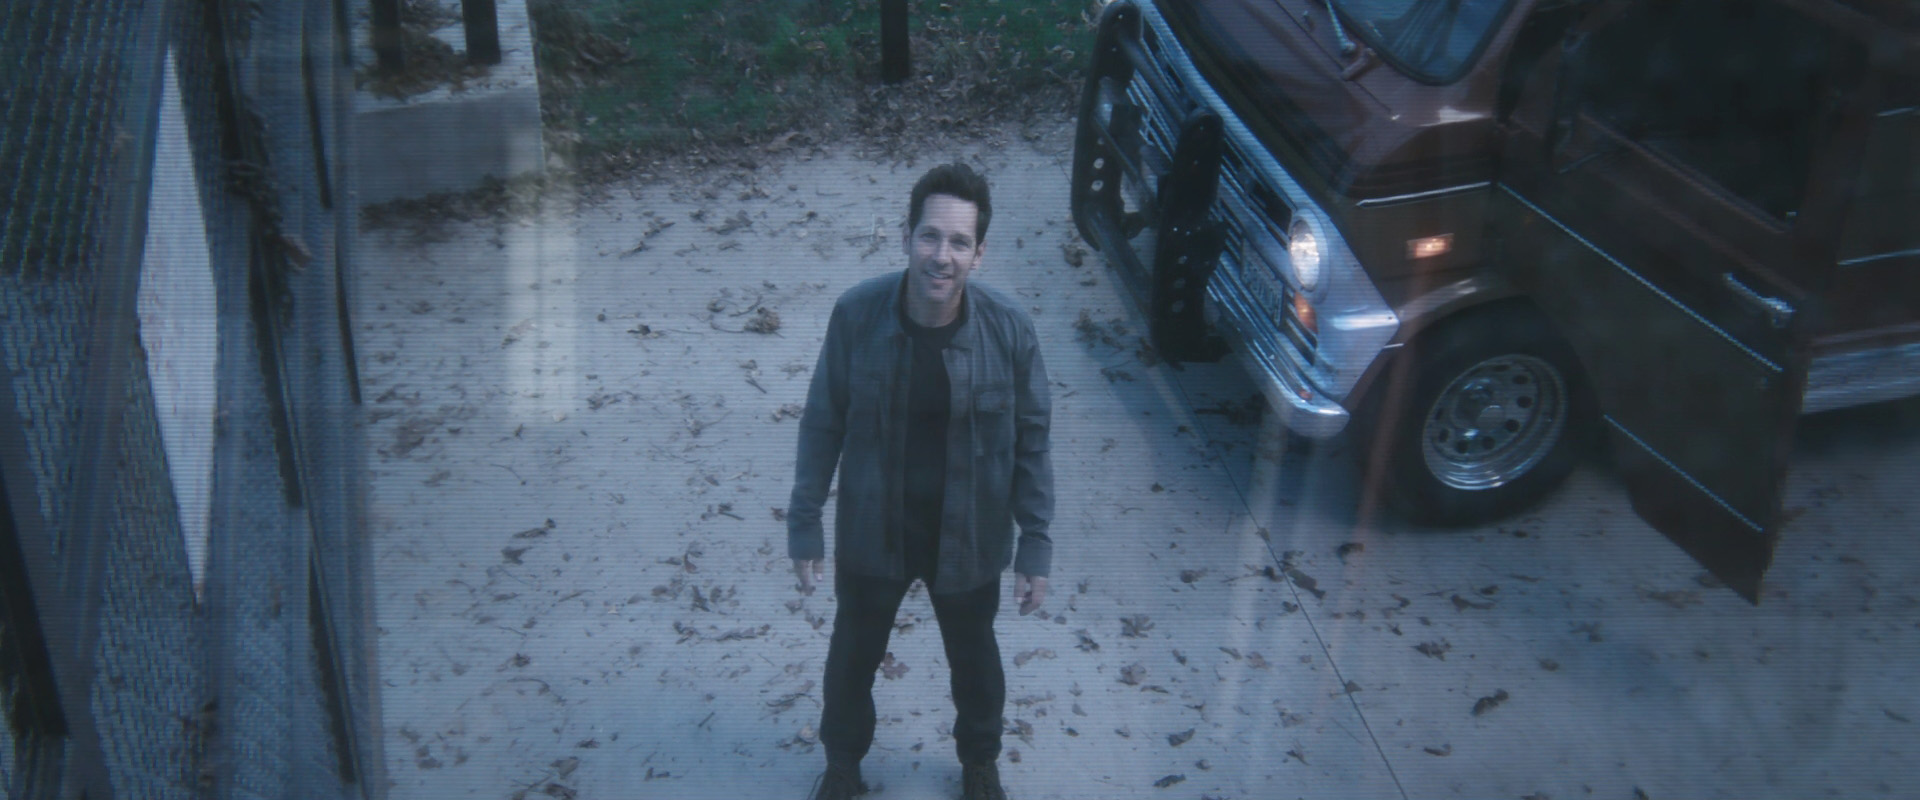 Avengers Endgame Breakdown - Scott Lang Captain America